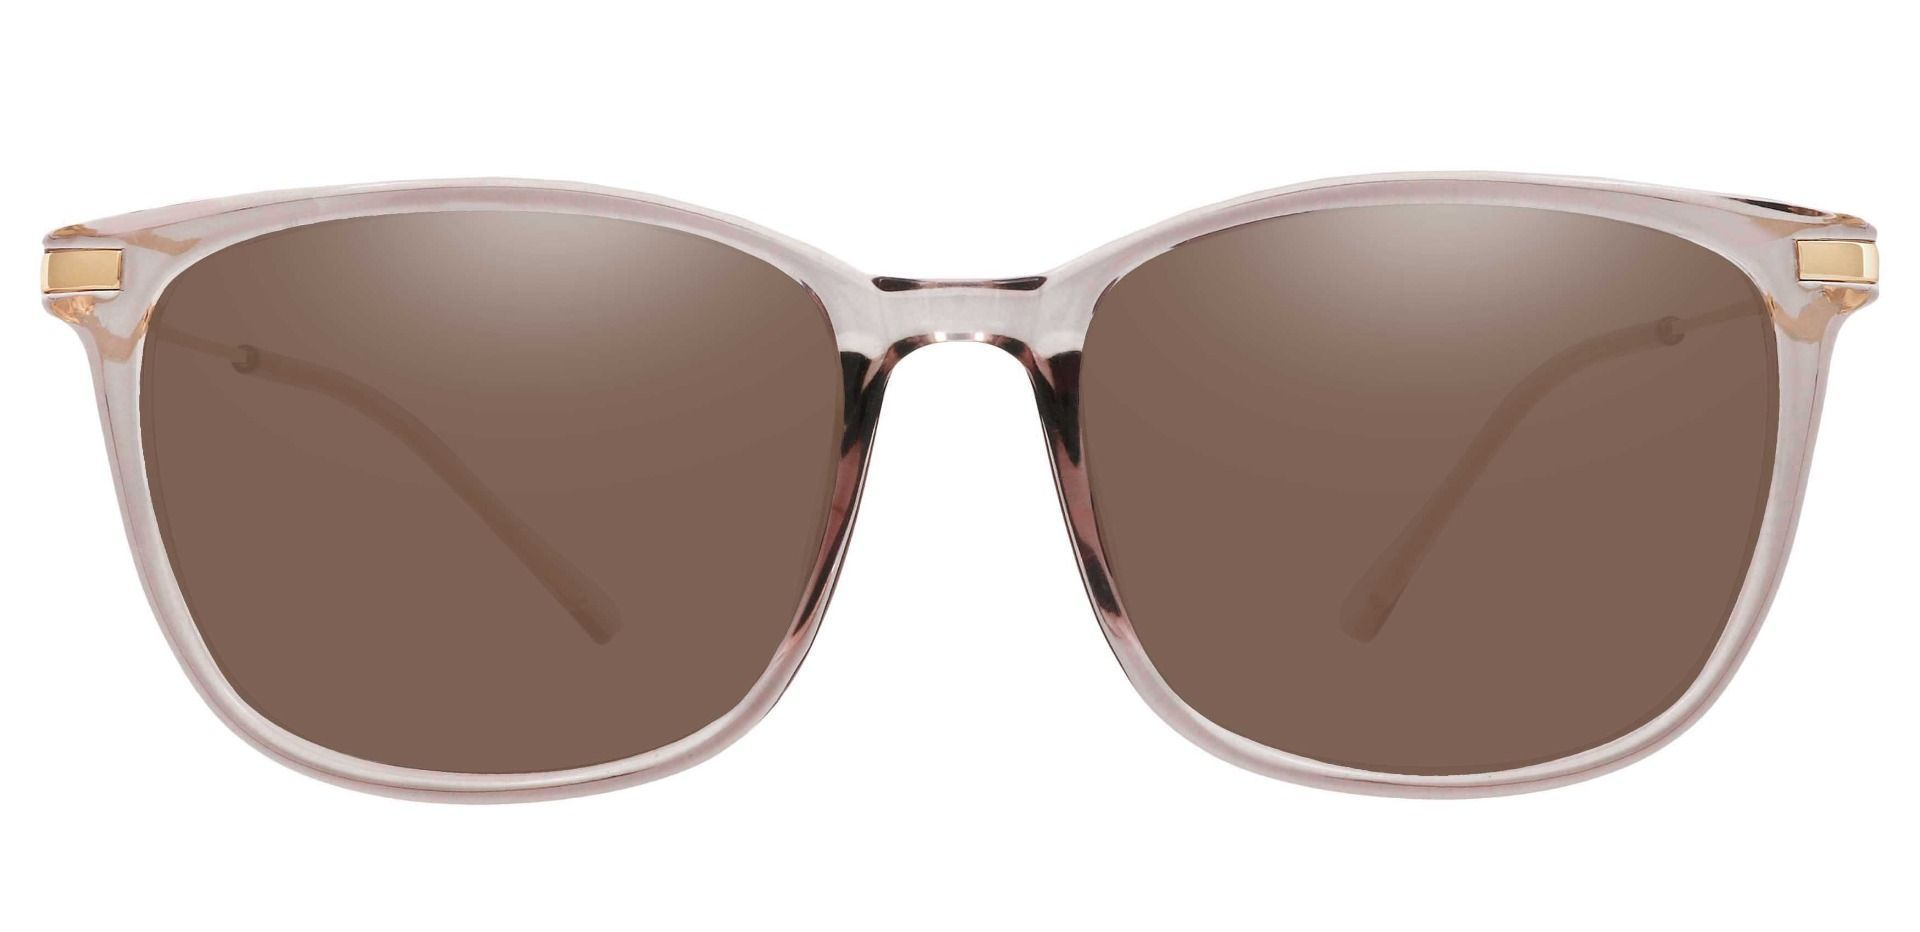 Katie square Prescription Sunglasses - Clear Frame With Brown Lenses